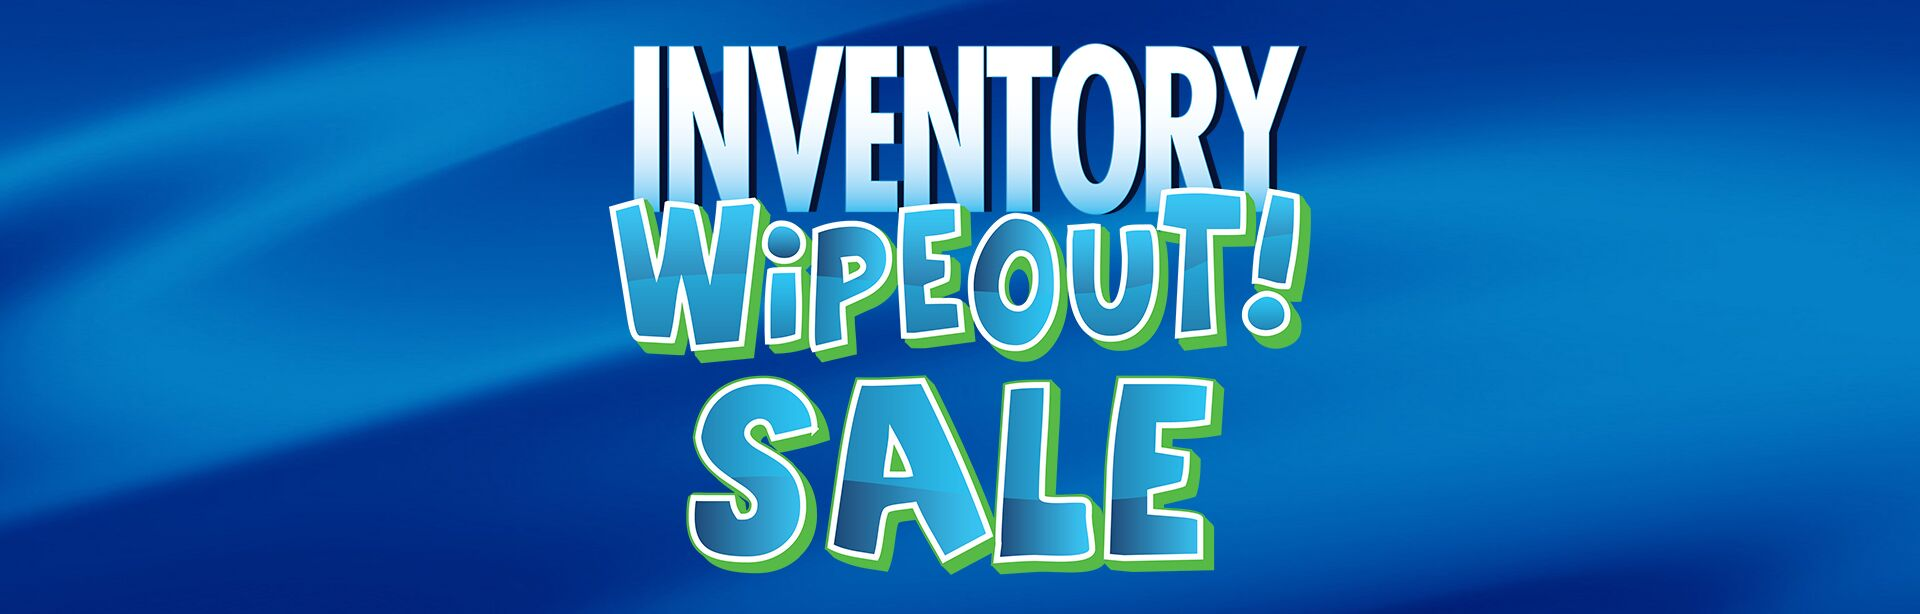 Inventory Wipeout Sale!